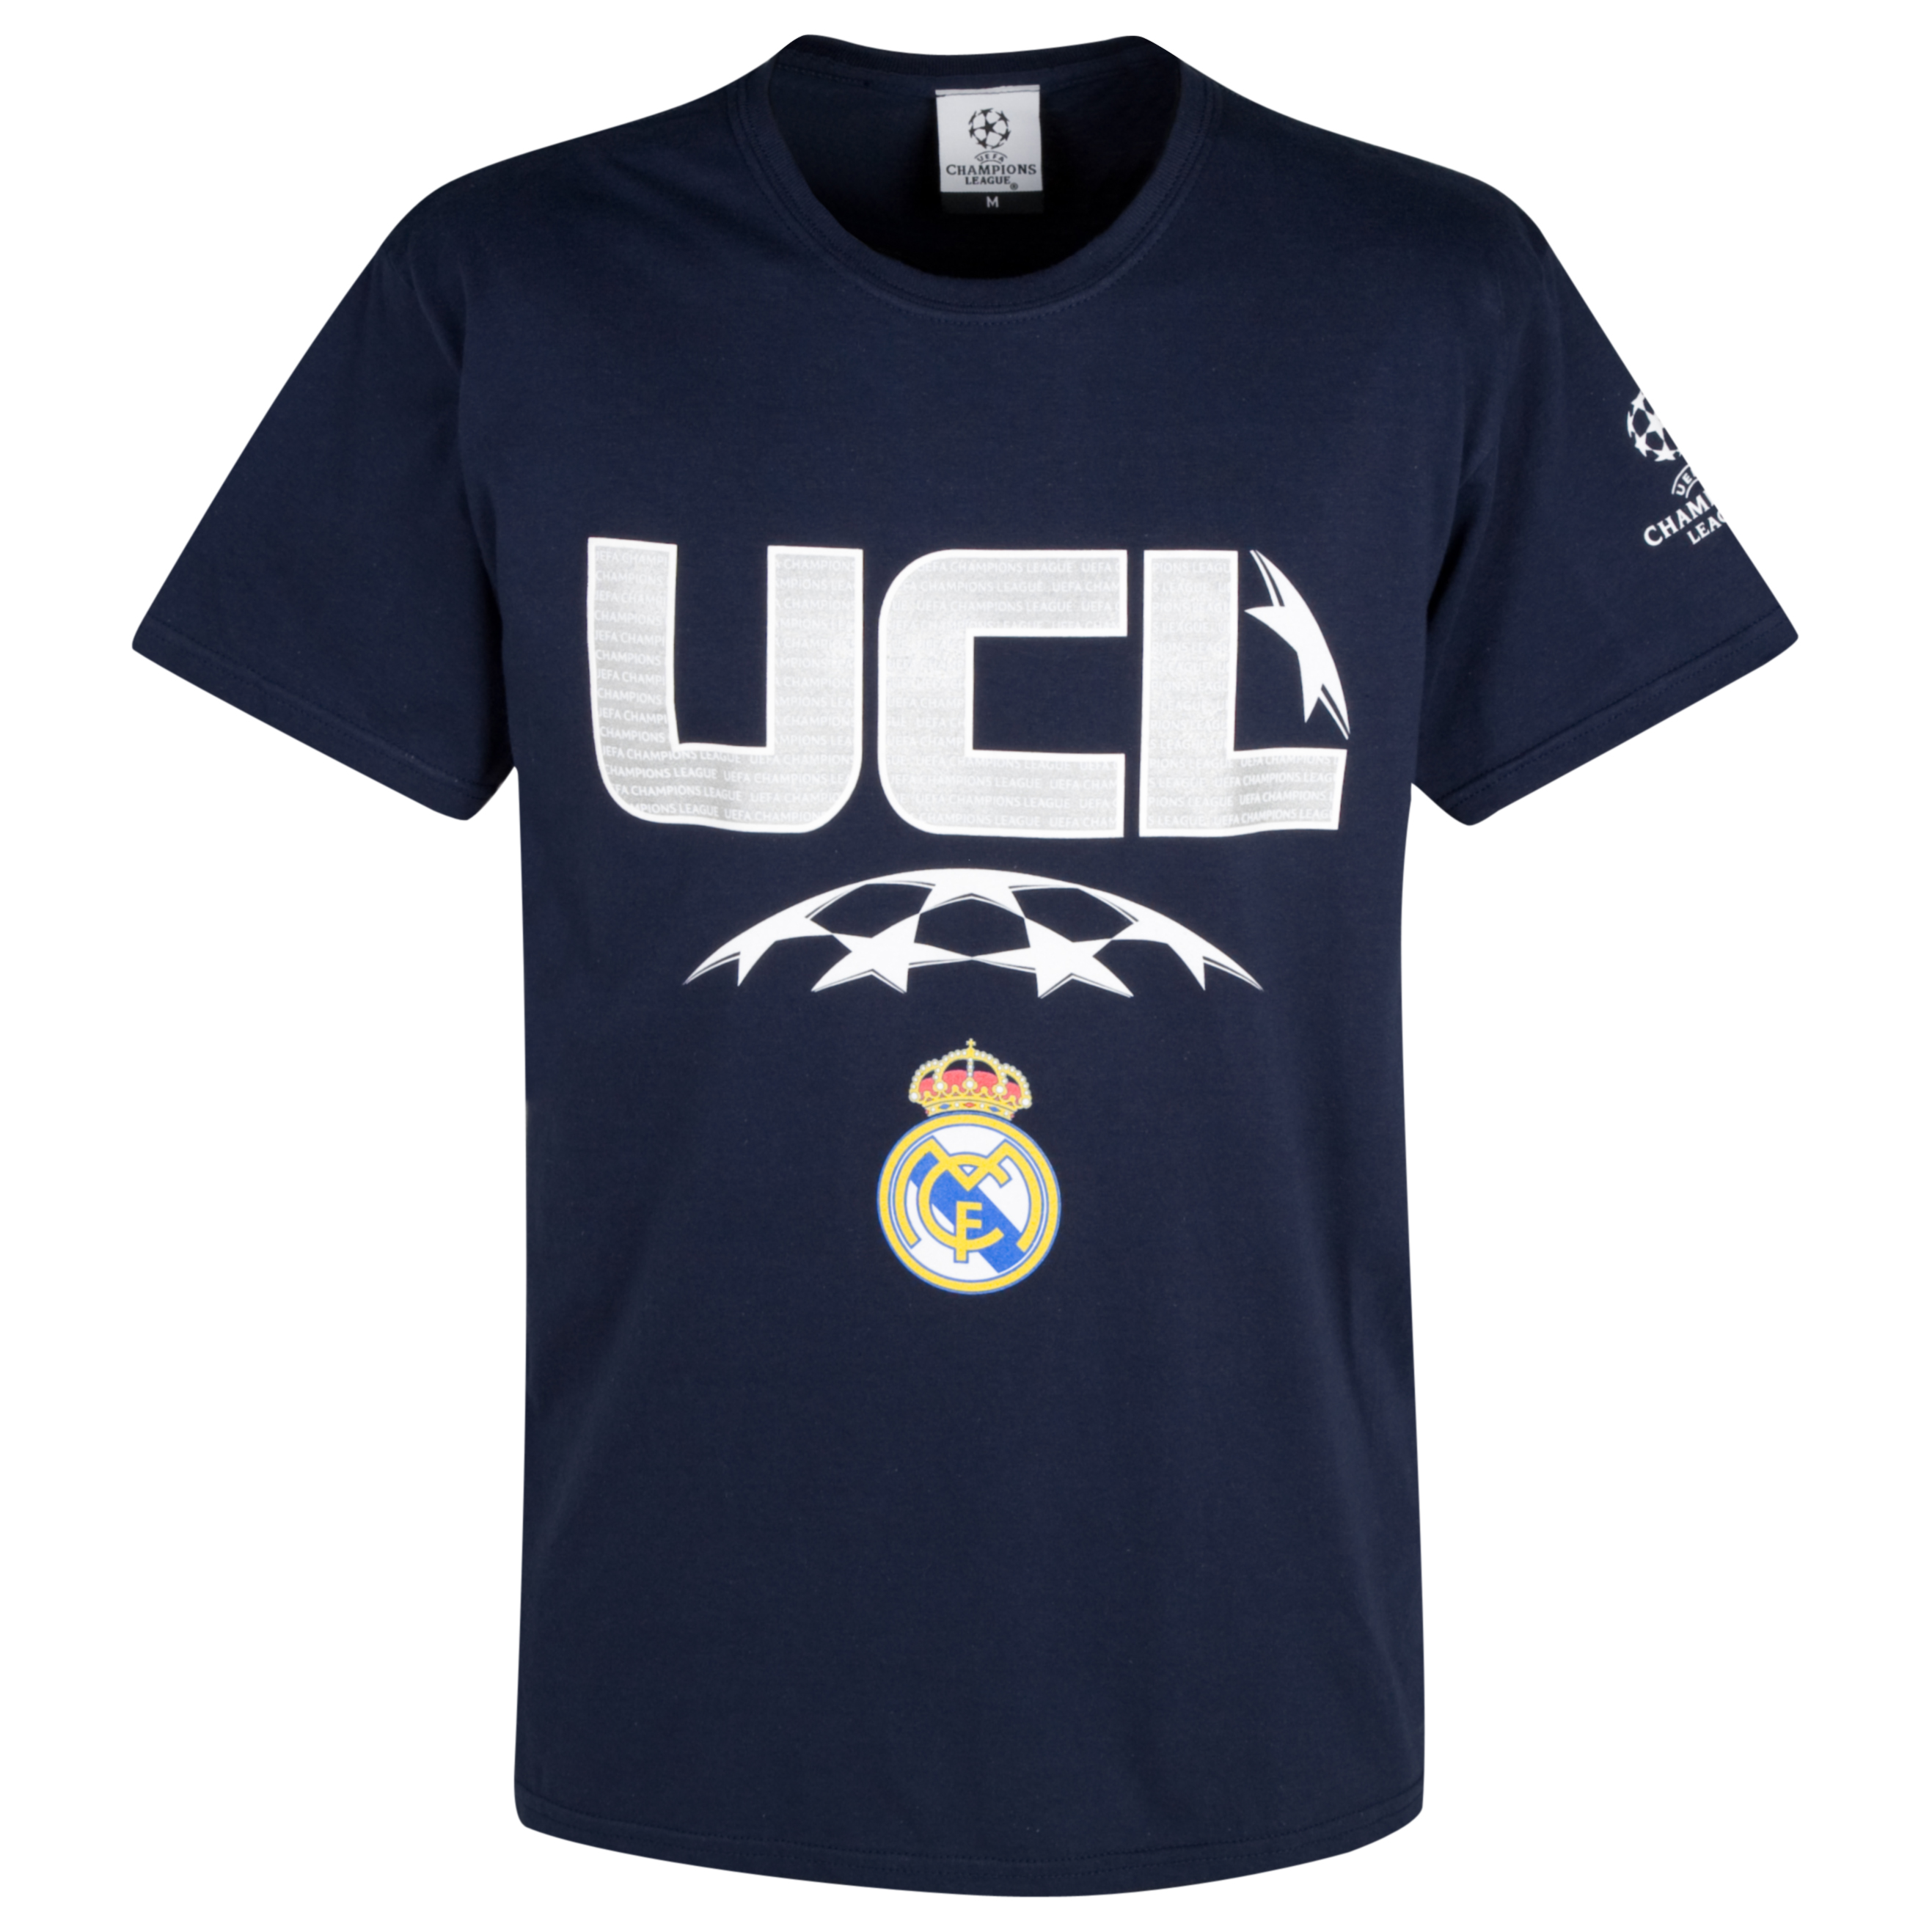 Real Madrid Raised Print T-Shirt - Navy - Boys